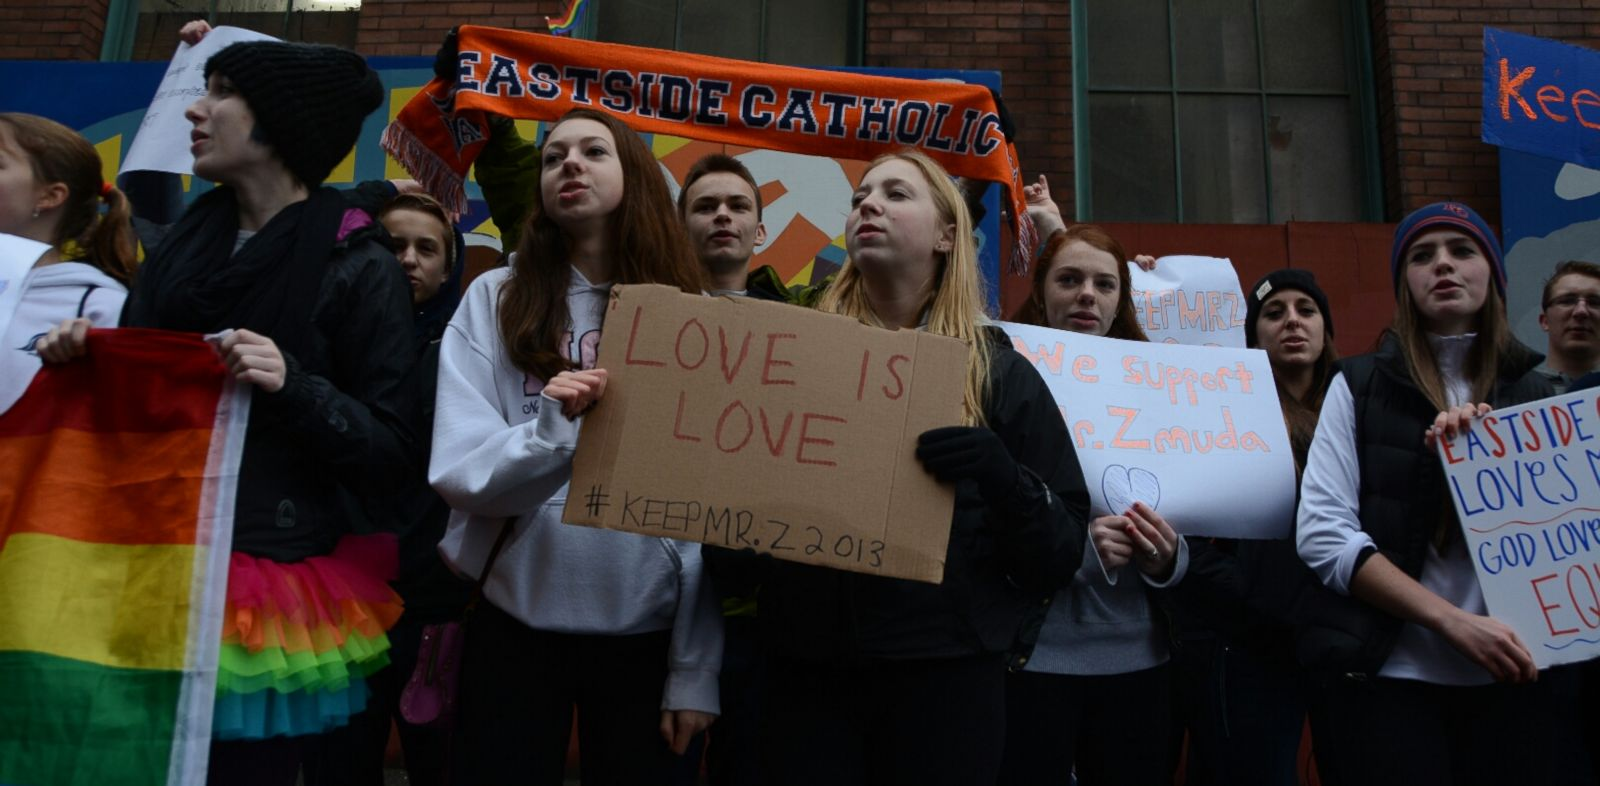 PHOTO: Alumni and students from Seattles Eastside Catholic School protest Sunday, Dec. 22, 2013, to demand the reinstatement of former vice principal Mark Zmuda.